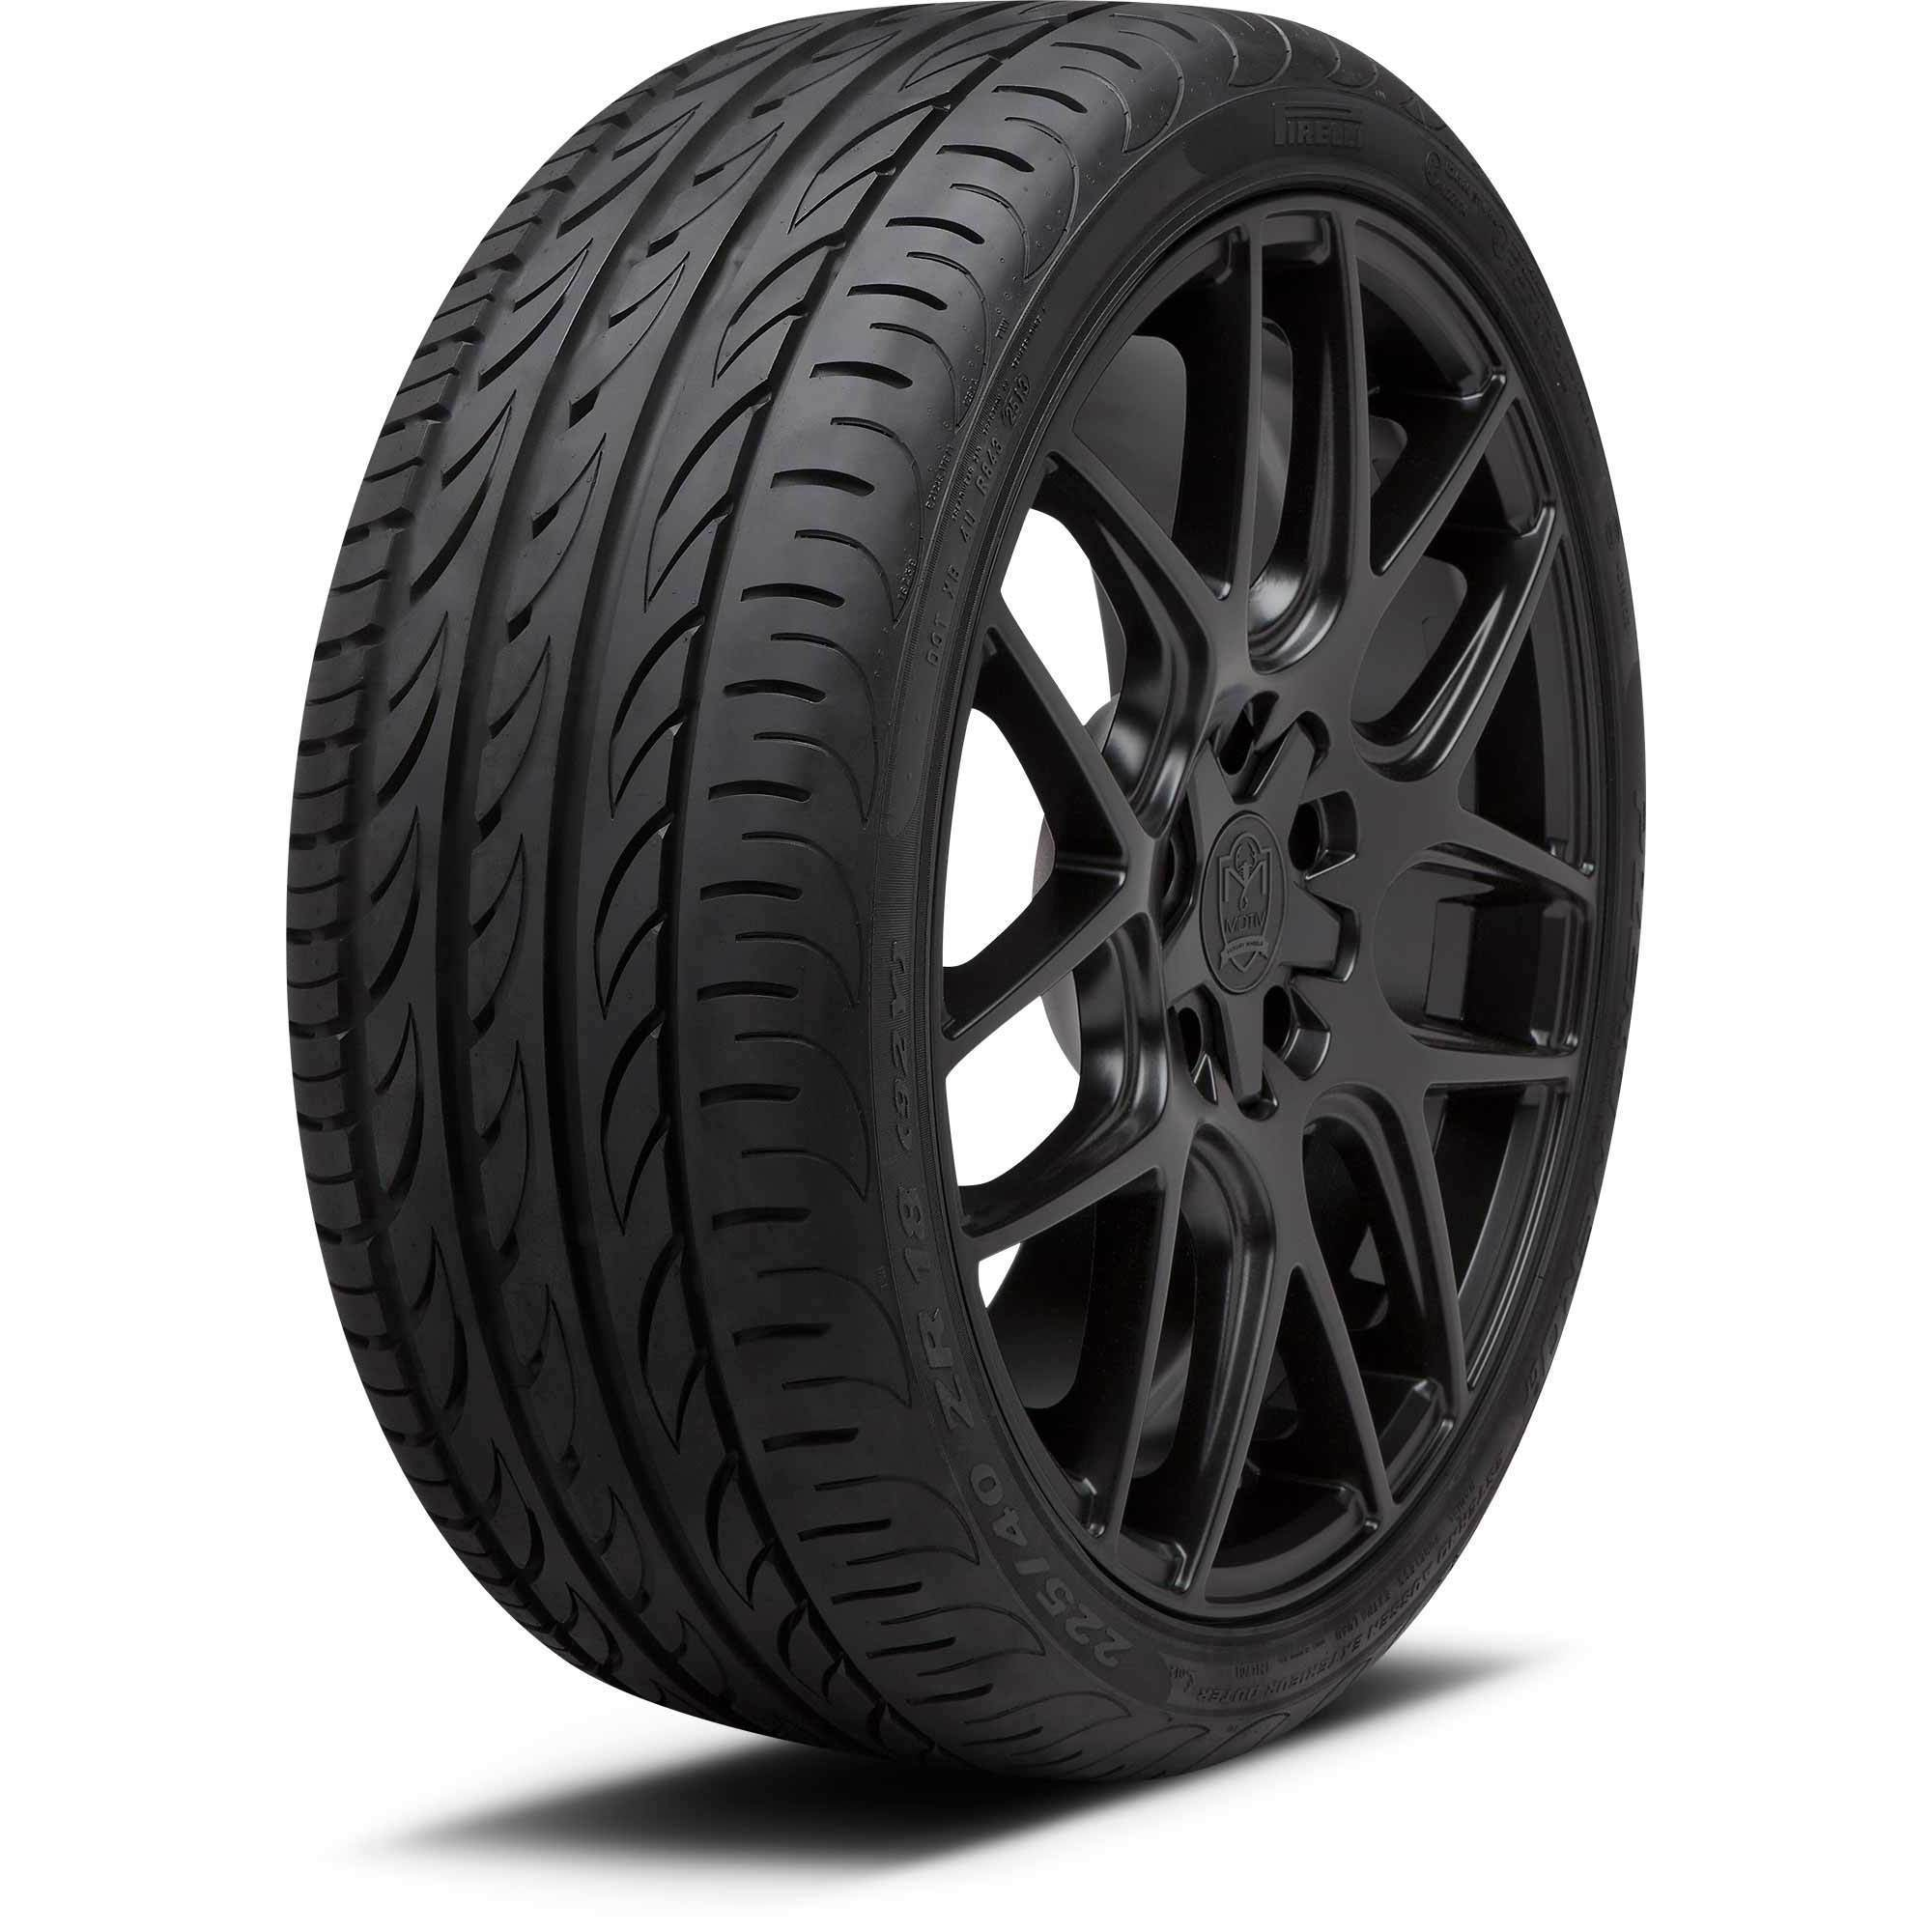 Pirelli PZero Nero GT | TireBuyer